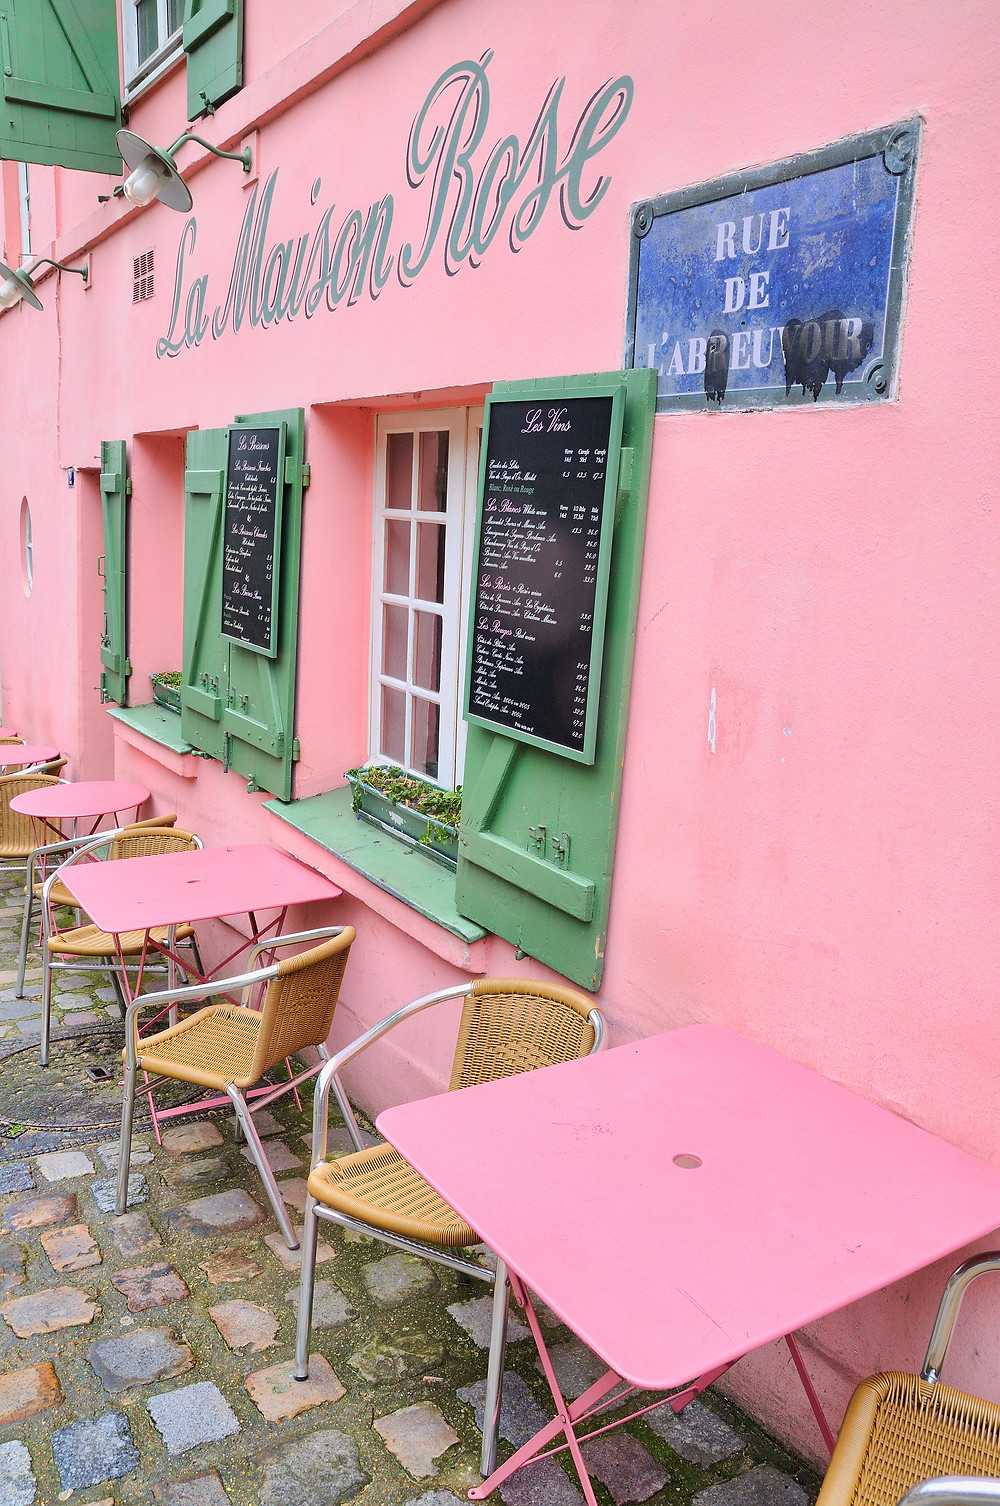 La Maison Rose, the Pink House -- a restaurant once frequented by Picasso